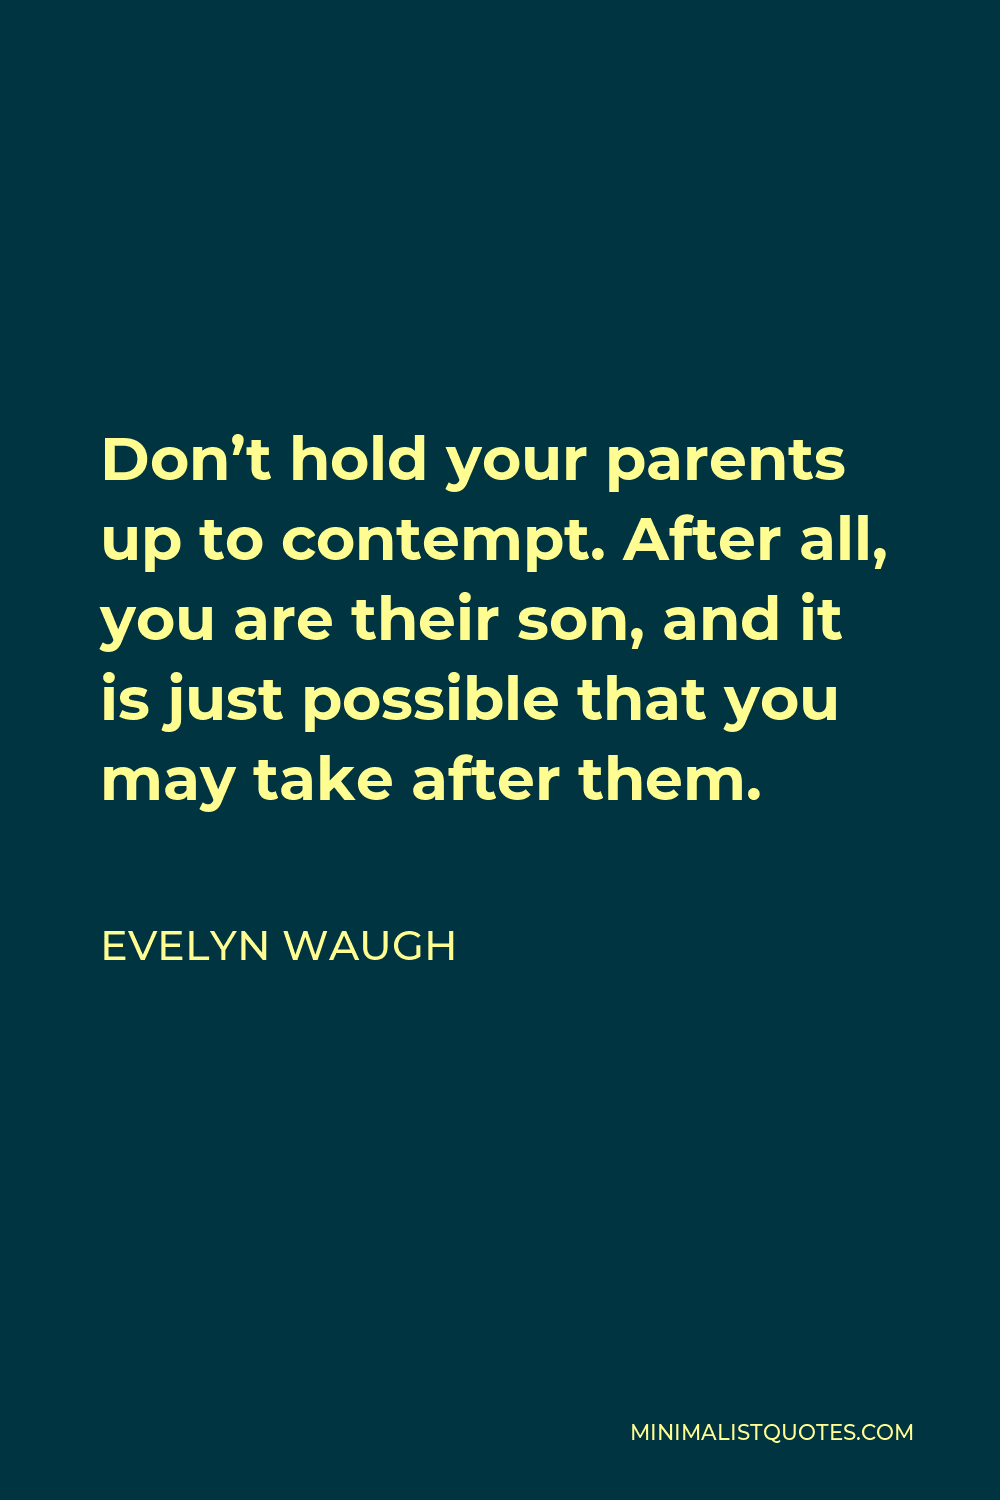 Evelyn Waugh Quote - Don't hold your parents up to contempt. After all, you are their son, and it is just possible that you may take after them.